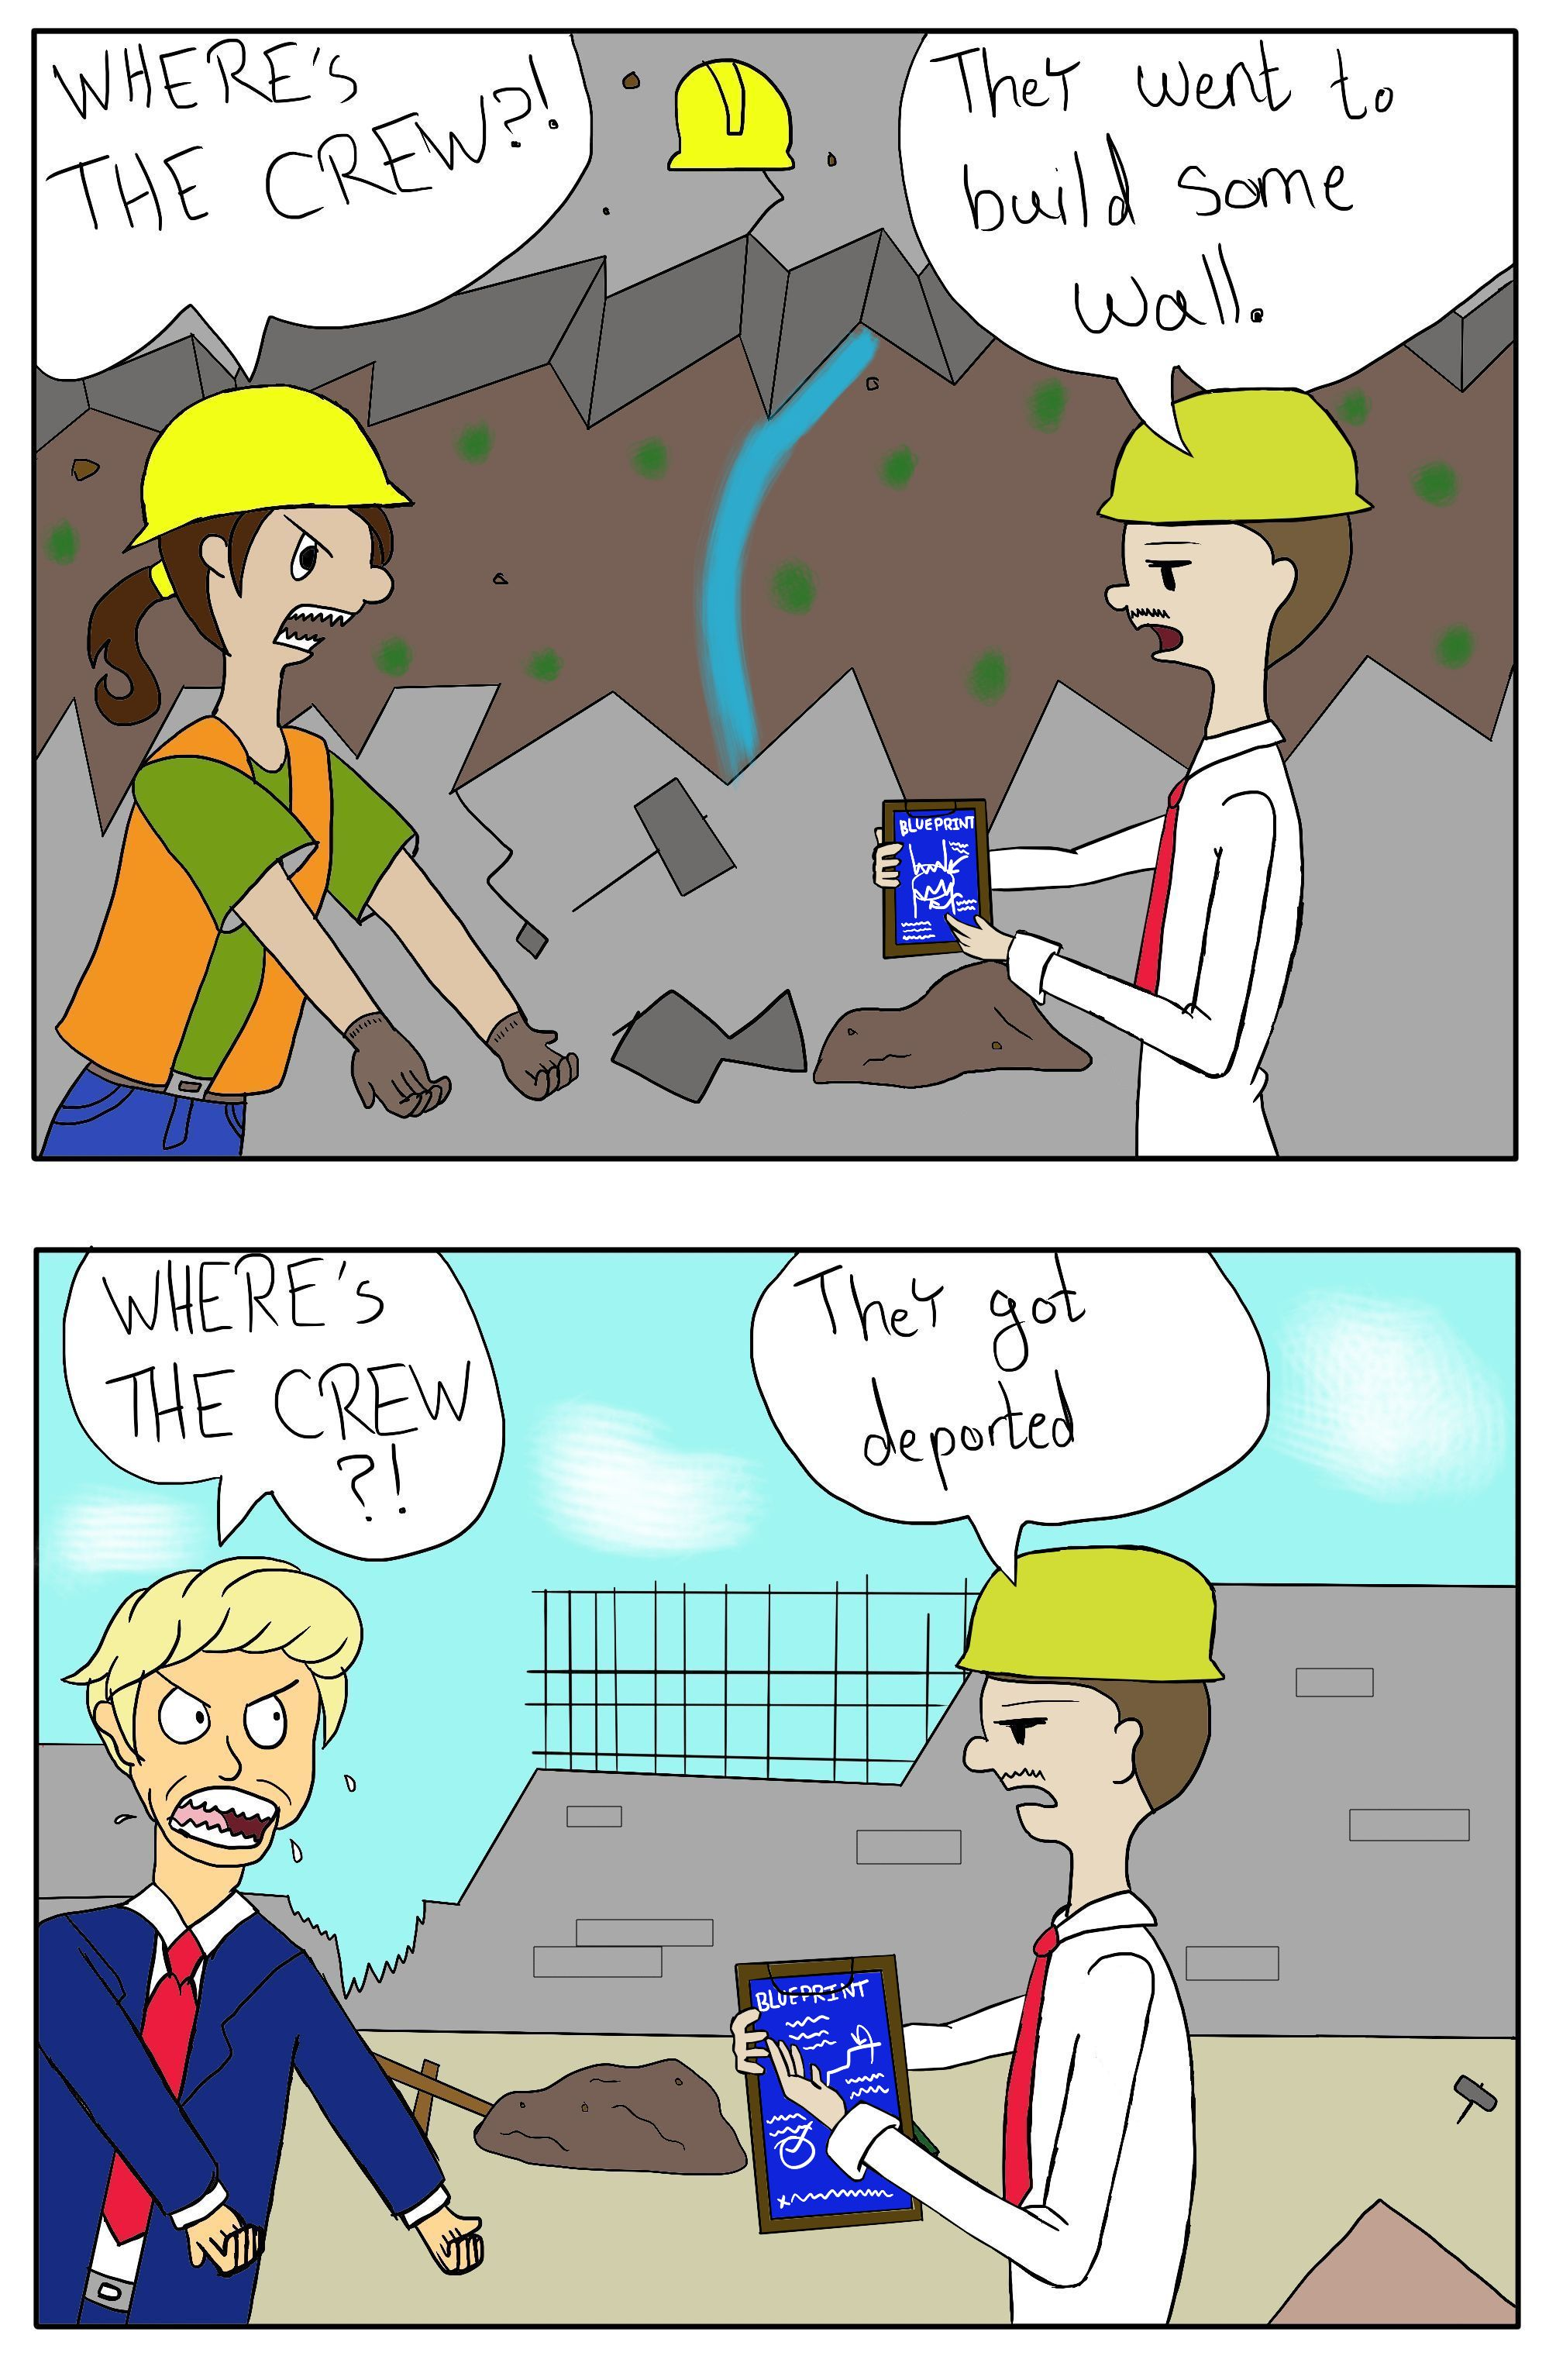 Comic of road crew asking where the workers are and foreman saying they went to build the wall then foreman at the wall saying they were deported.